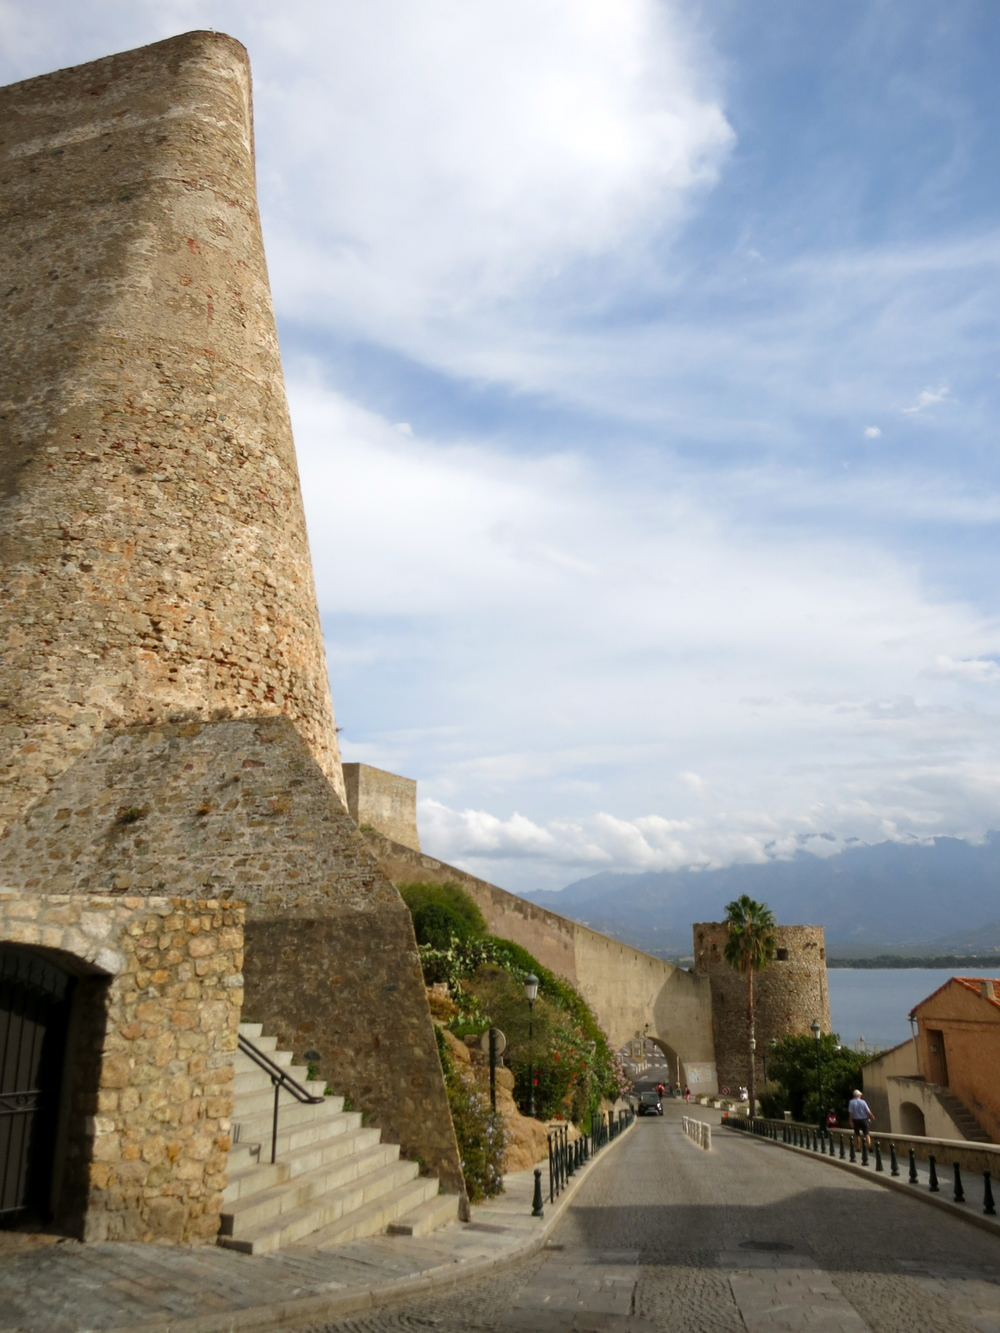 The walls of the Calvi citadel impose their presence over the tiny town. © 2014 Gail Jessen